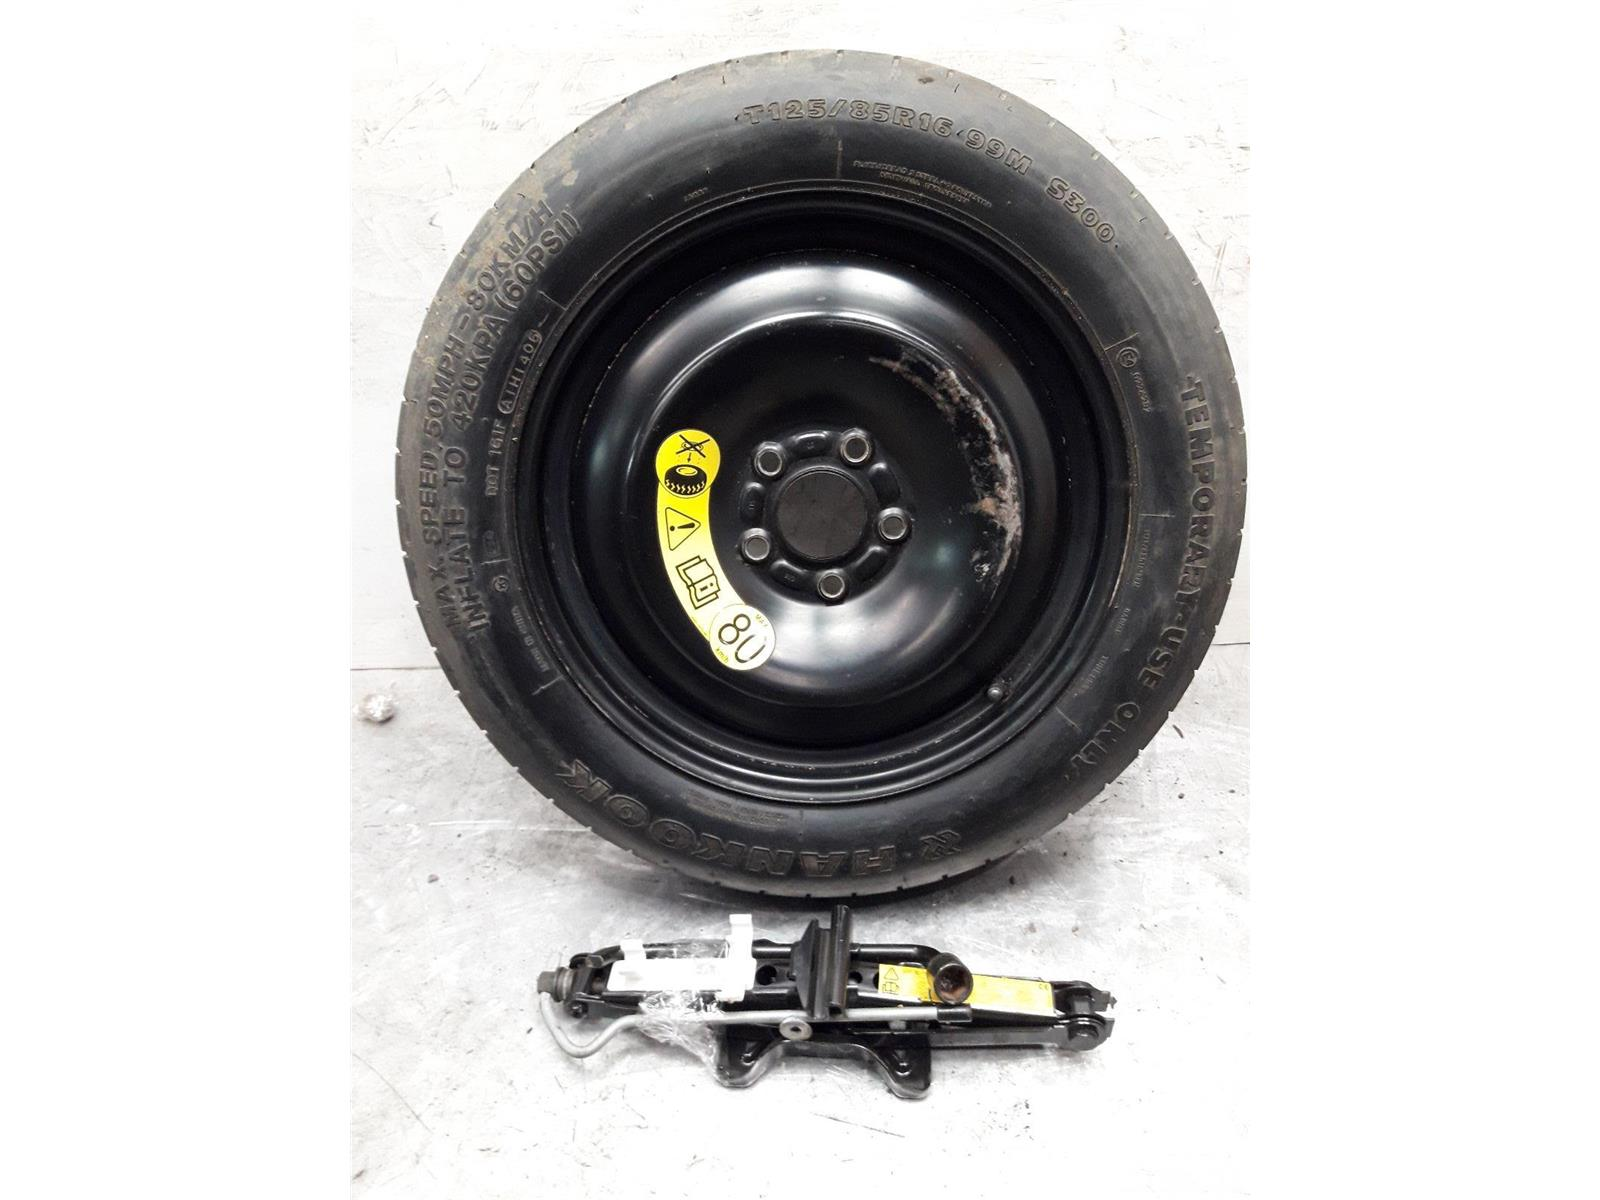 FORD S-MAX 16 Inch Spare Wheel & Tyre Space Saver 125/85/16 + Jack & Brace